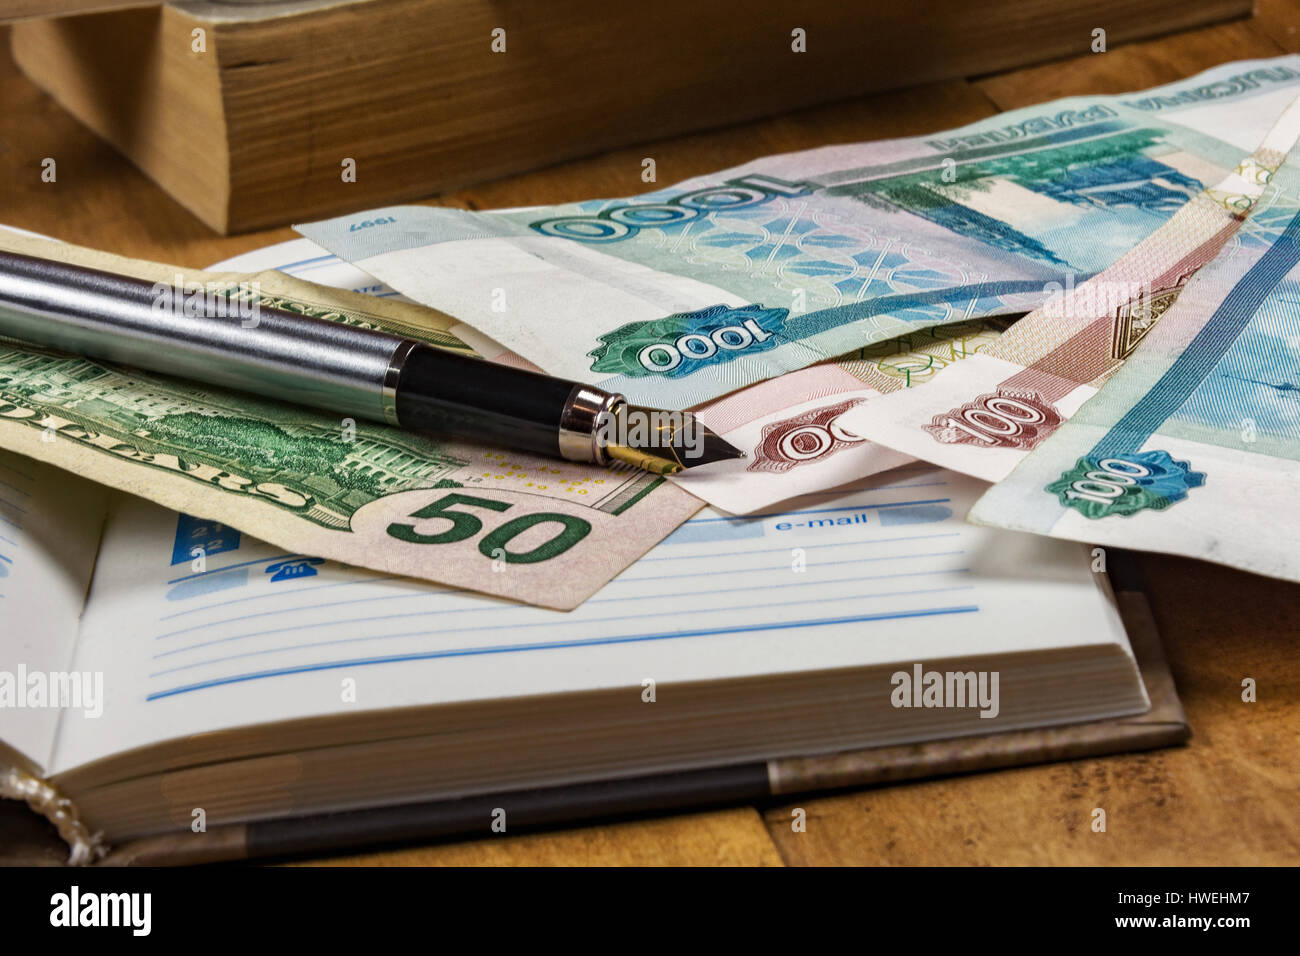 On the wooden surface is an open diary, money bills and fountain pen - Stock Image